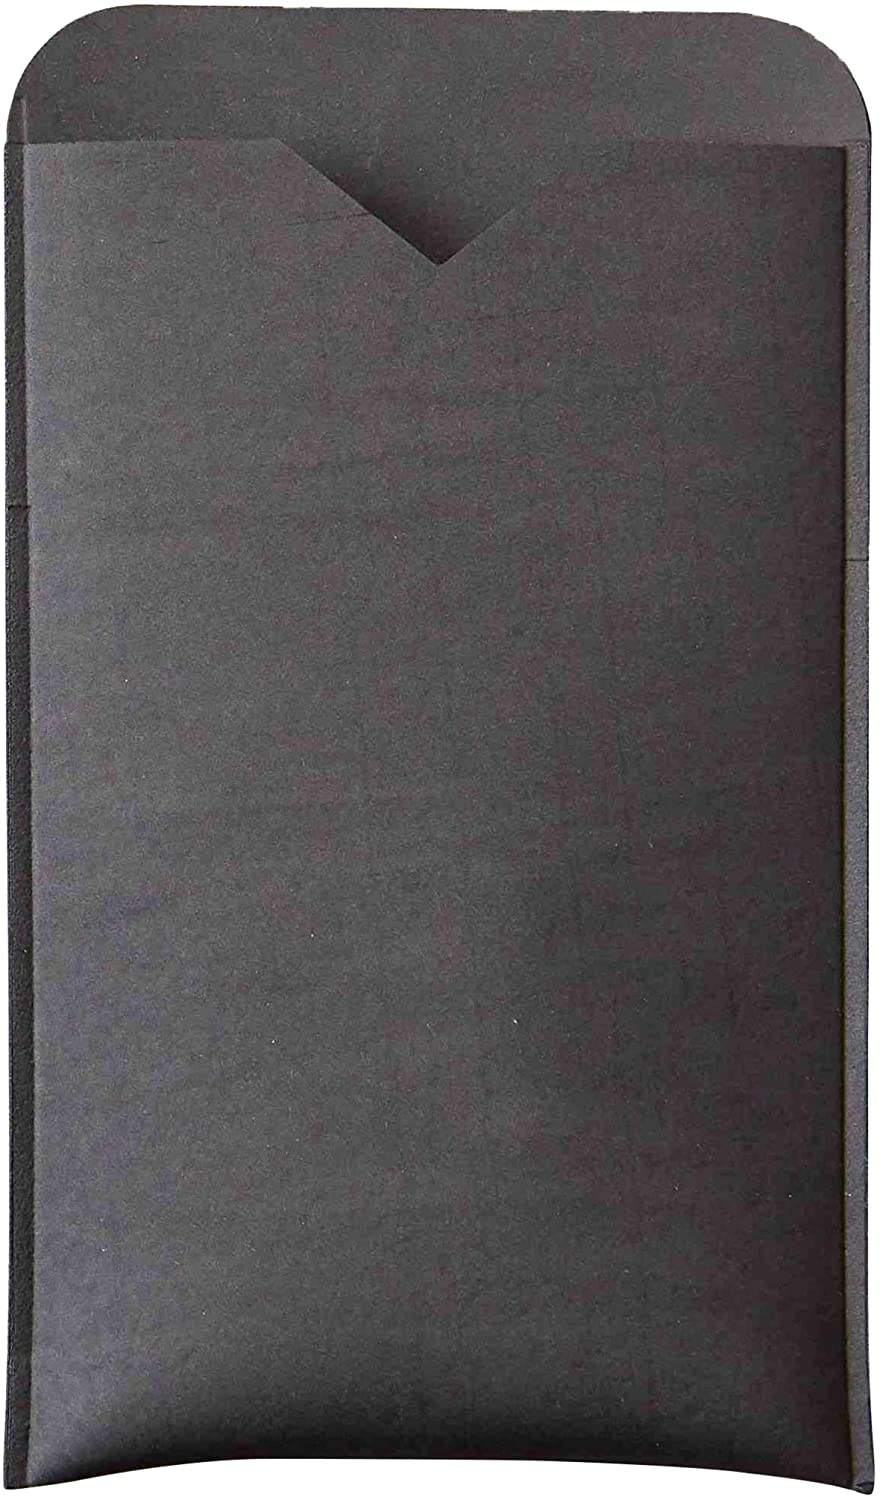 FLYGONS Suede-Like Eco-Friendly Smart Phone Protector | V Type | Case Cover for Powerbank/Mobile/Smartphone/iPhone 11 (Dark Gray)(3pcs)